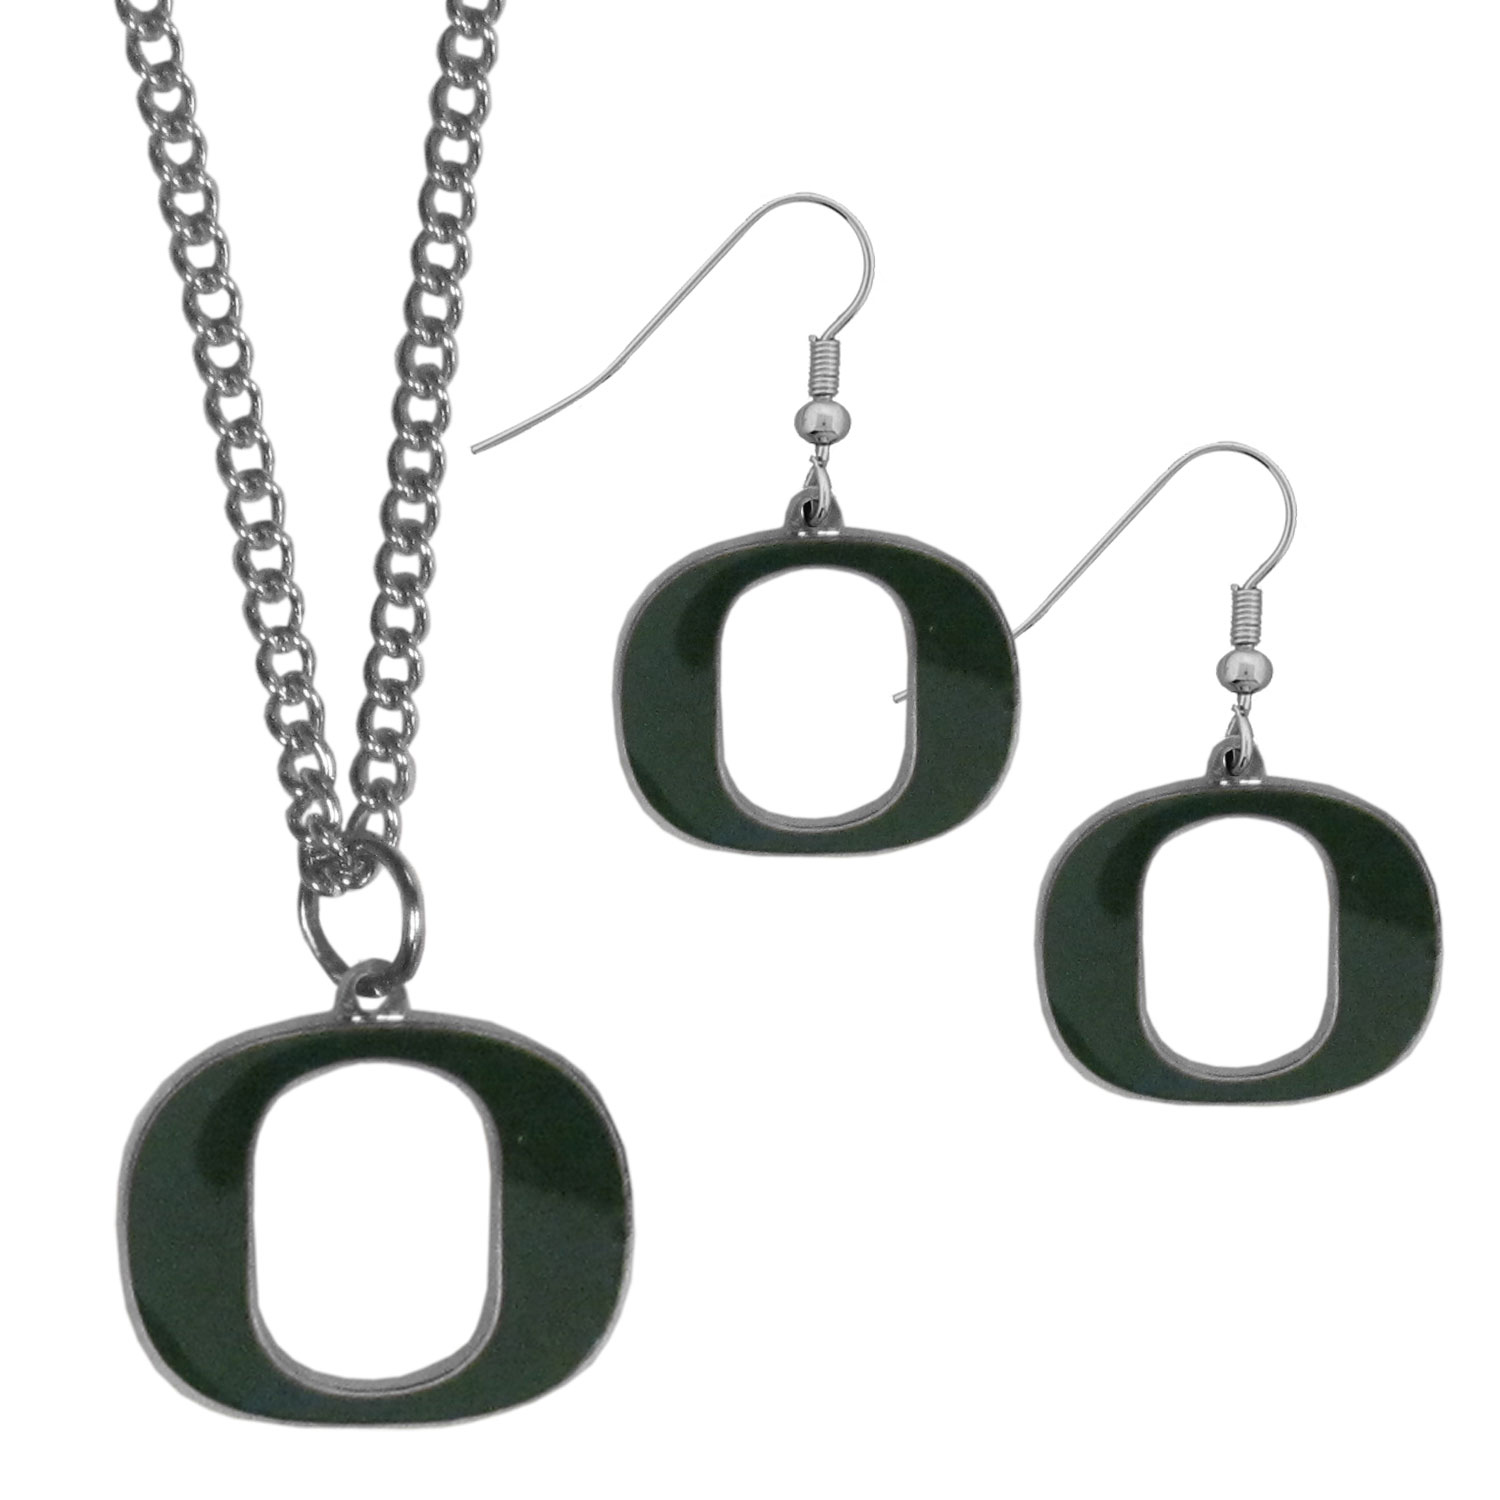 Oregon Ducks Dangle Earrings and Chain Necklace Set - This classic jewelry set contains are most popular Oregon Ducks dangle earrings and 22 inch chain necklace. The trendy, dangle earrings are lightweight and feature a fully cast metal team charm with enameled team colors. The matching necklace completes this fashion forward combo and is a spirited set that is perfect for game day but nice enough for everyday.